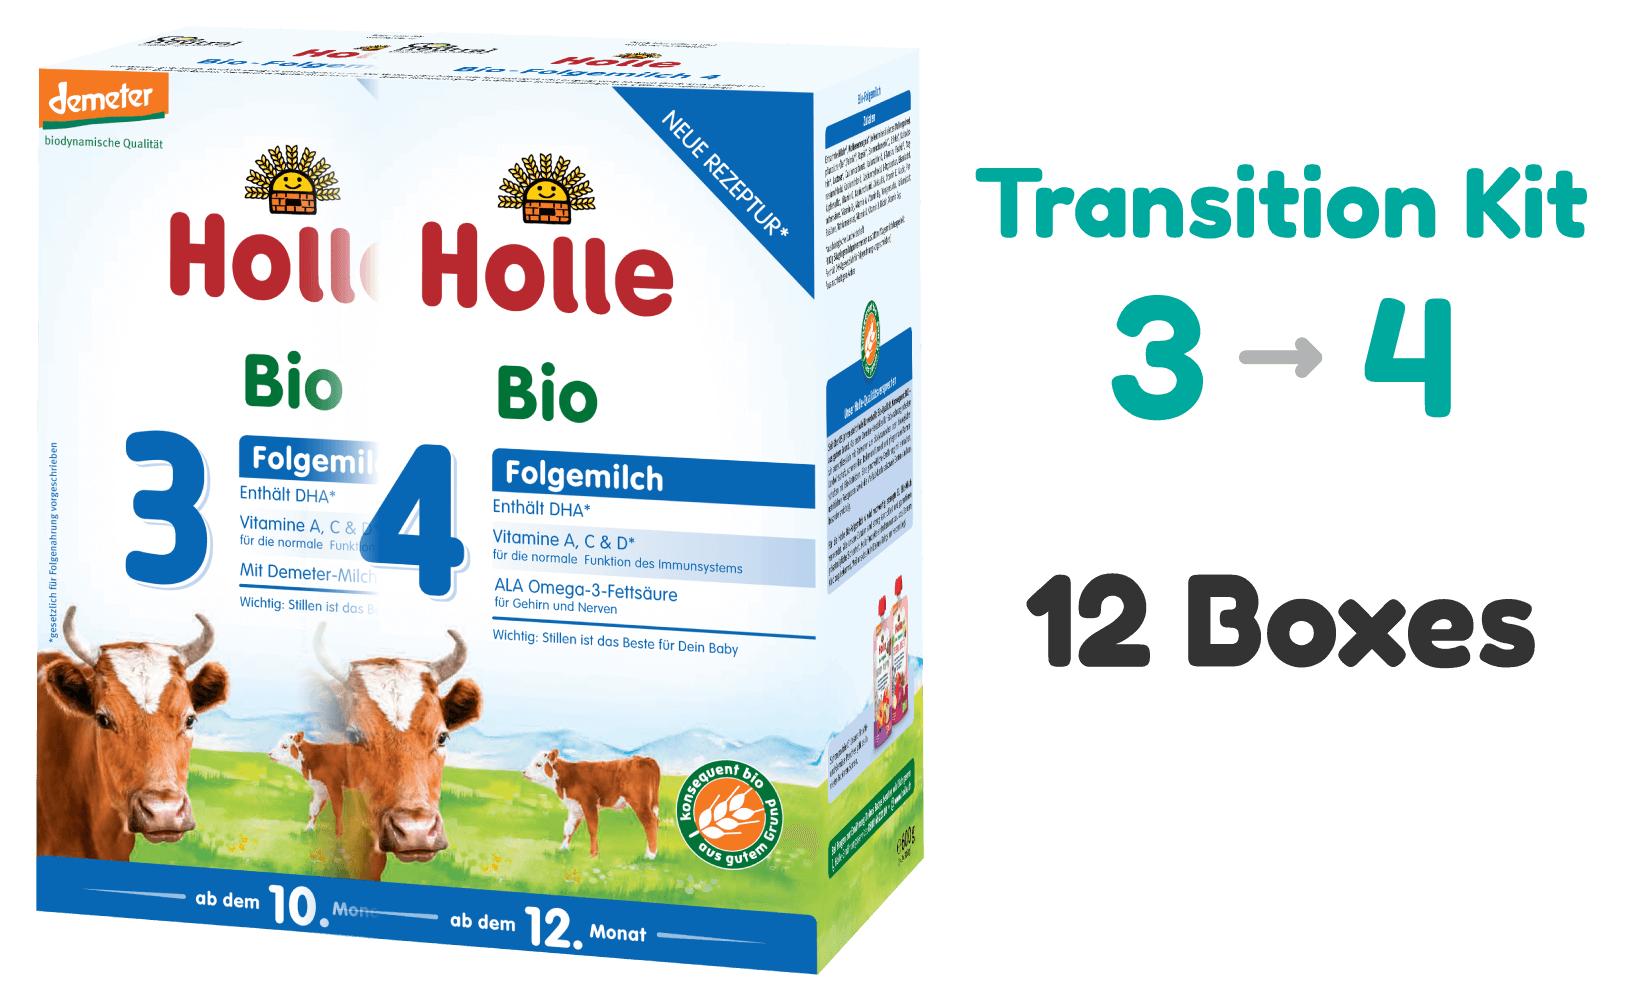 Transition Kit: Holle Cow stage 3 and stage 4